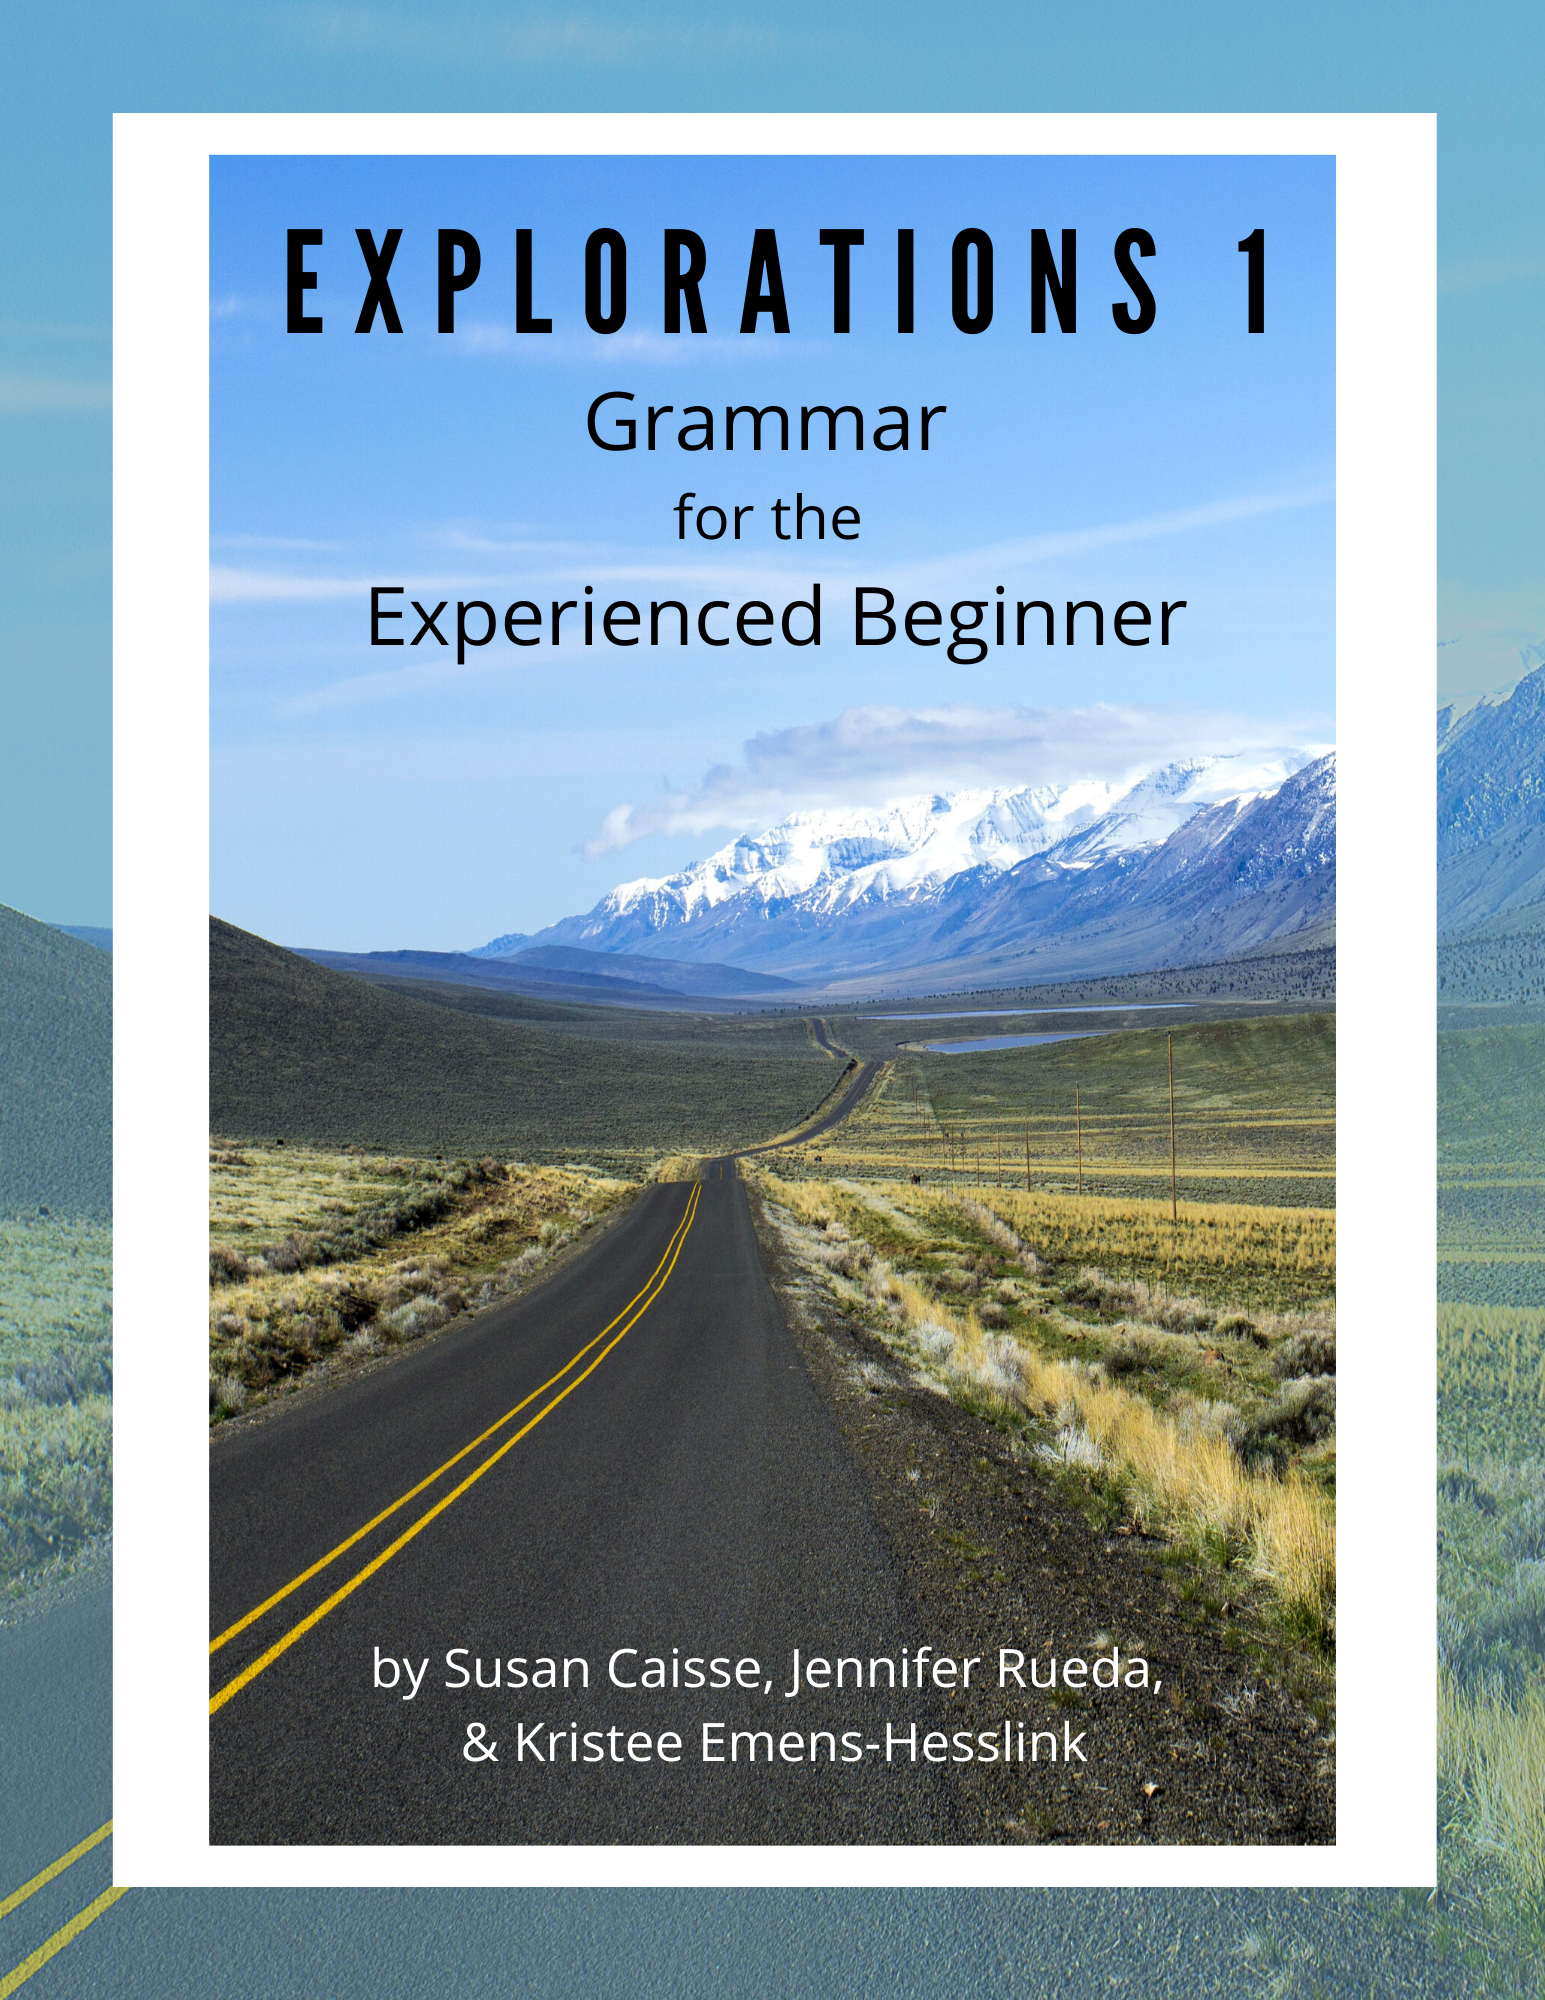 Explorations 1: Grammar for the Experienced Beginner